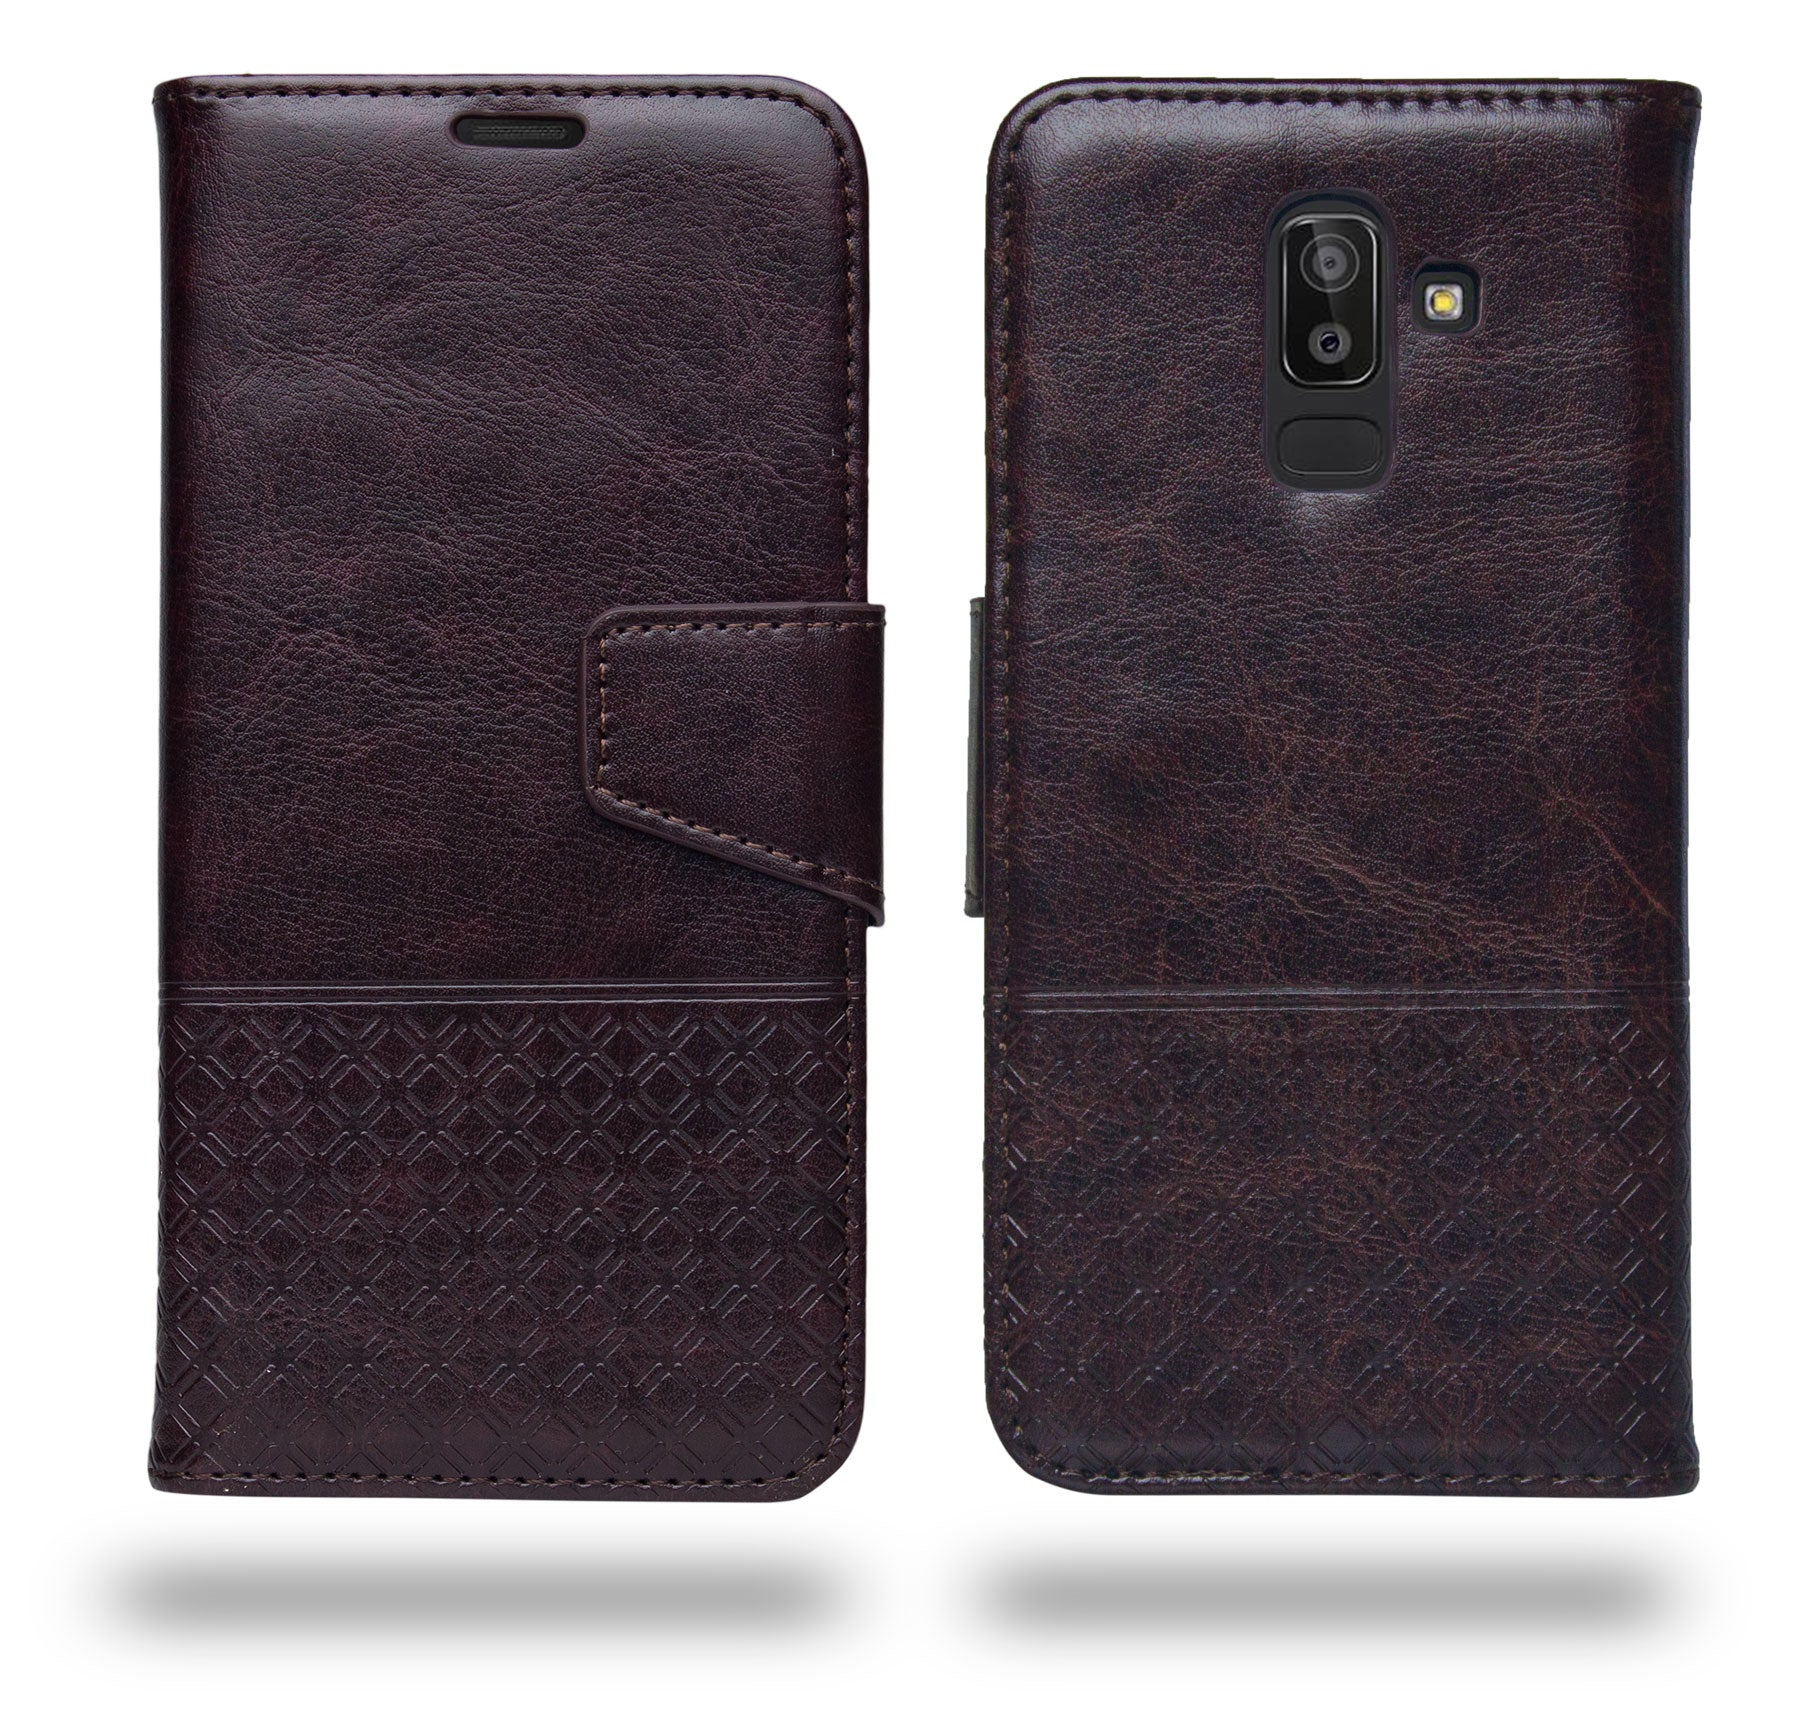 Ceego Luxuria Compact Wallet Flip Cover for Samsung Galaxy J8 2018 (Chestnut Brown)